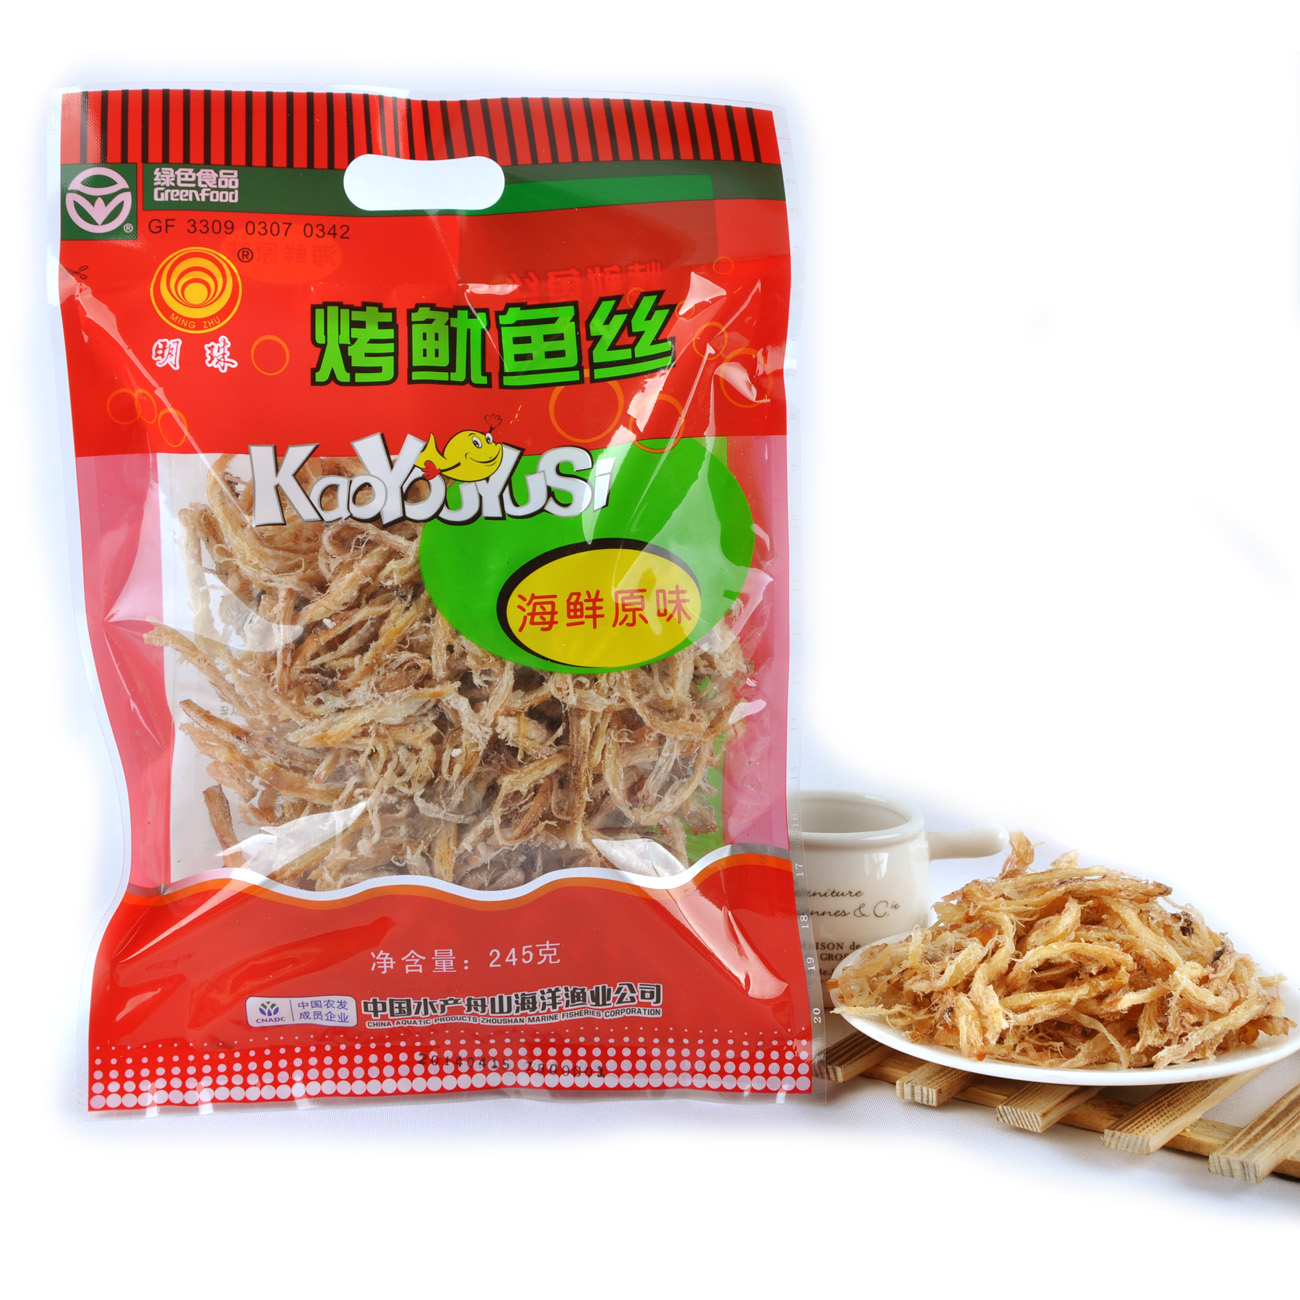 Pearl zhoushan specialty dried seafood snacks ready to eat grilled squid grilled shredded squid pieces seafood snack 245g